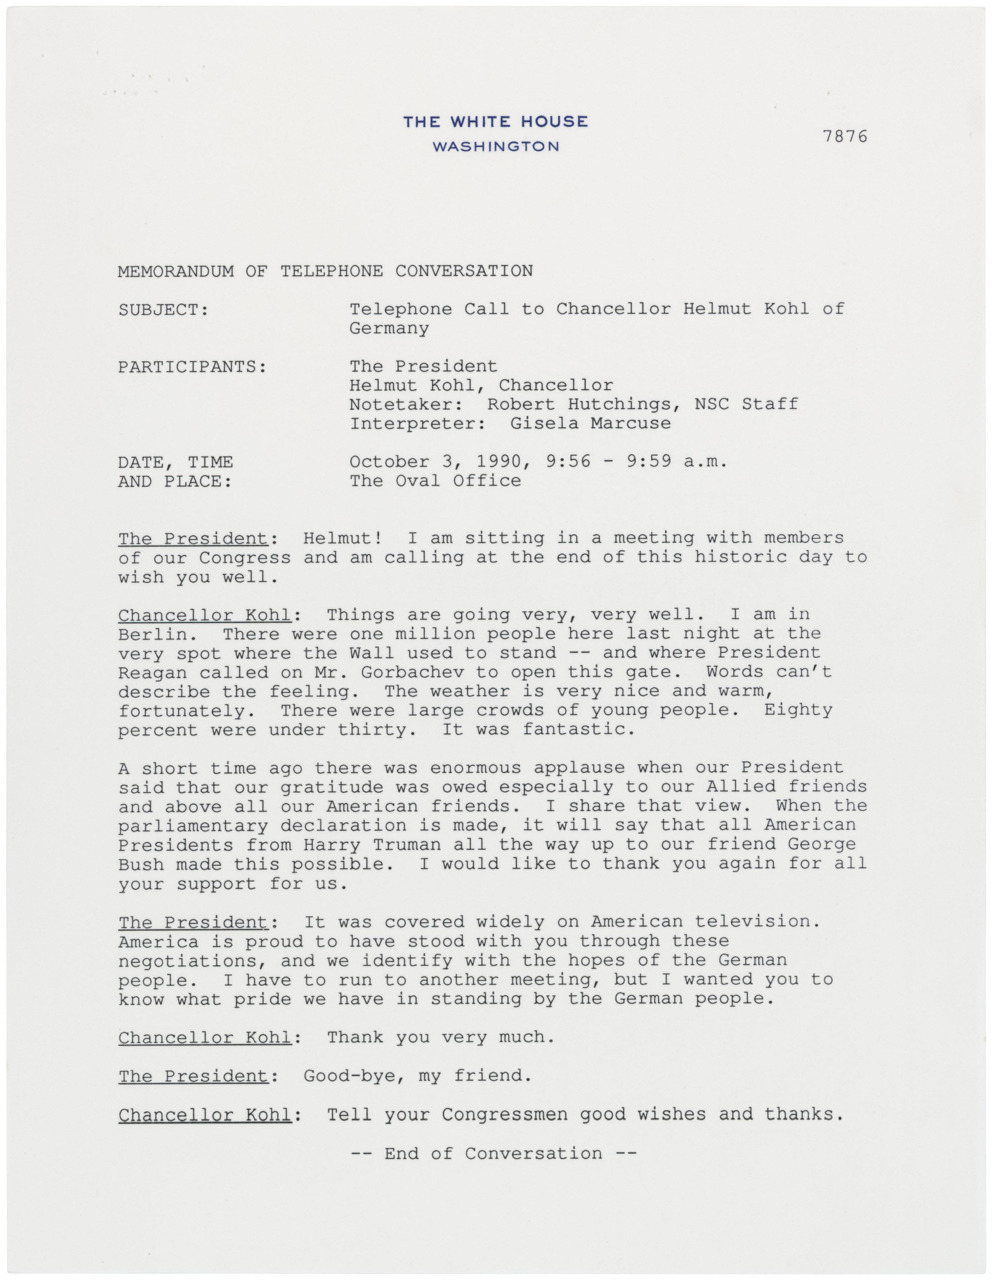 "October 3, 1990 - Memorandum of Telephone Conversation between President Bush and Chancellor Helmut Kohl of Germany   On October 3, 1990, East and West Germany were reunified, one year after  the fall of the Berlin Wall.  This memo transcribes the brief  conversation which occurred between President George Bush and German  Chancellor Helmut Kohl, describing the reunification celebration. On June  12, 1987, President Ronald Reagan gave this historic speech at Berlin's  Brandenburg Gate in which he implored Soviet General Secretary  Gorbachev: ""Mr. Gorbachev, open this gate.  Mr. Gorbachev, tear down  this wall."""